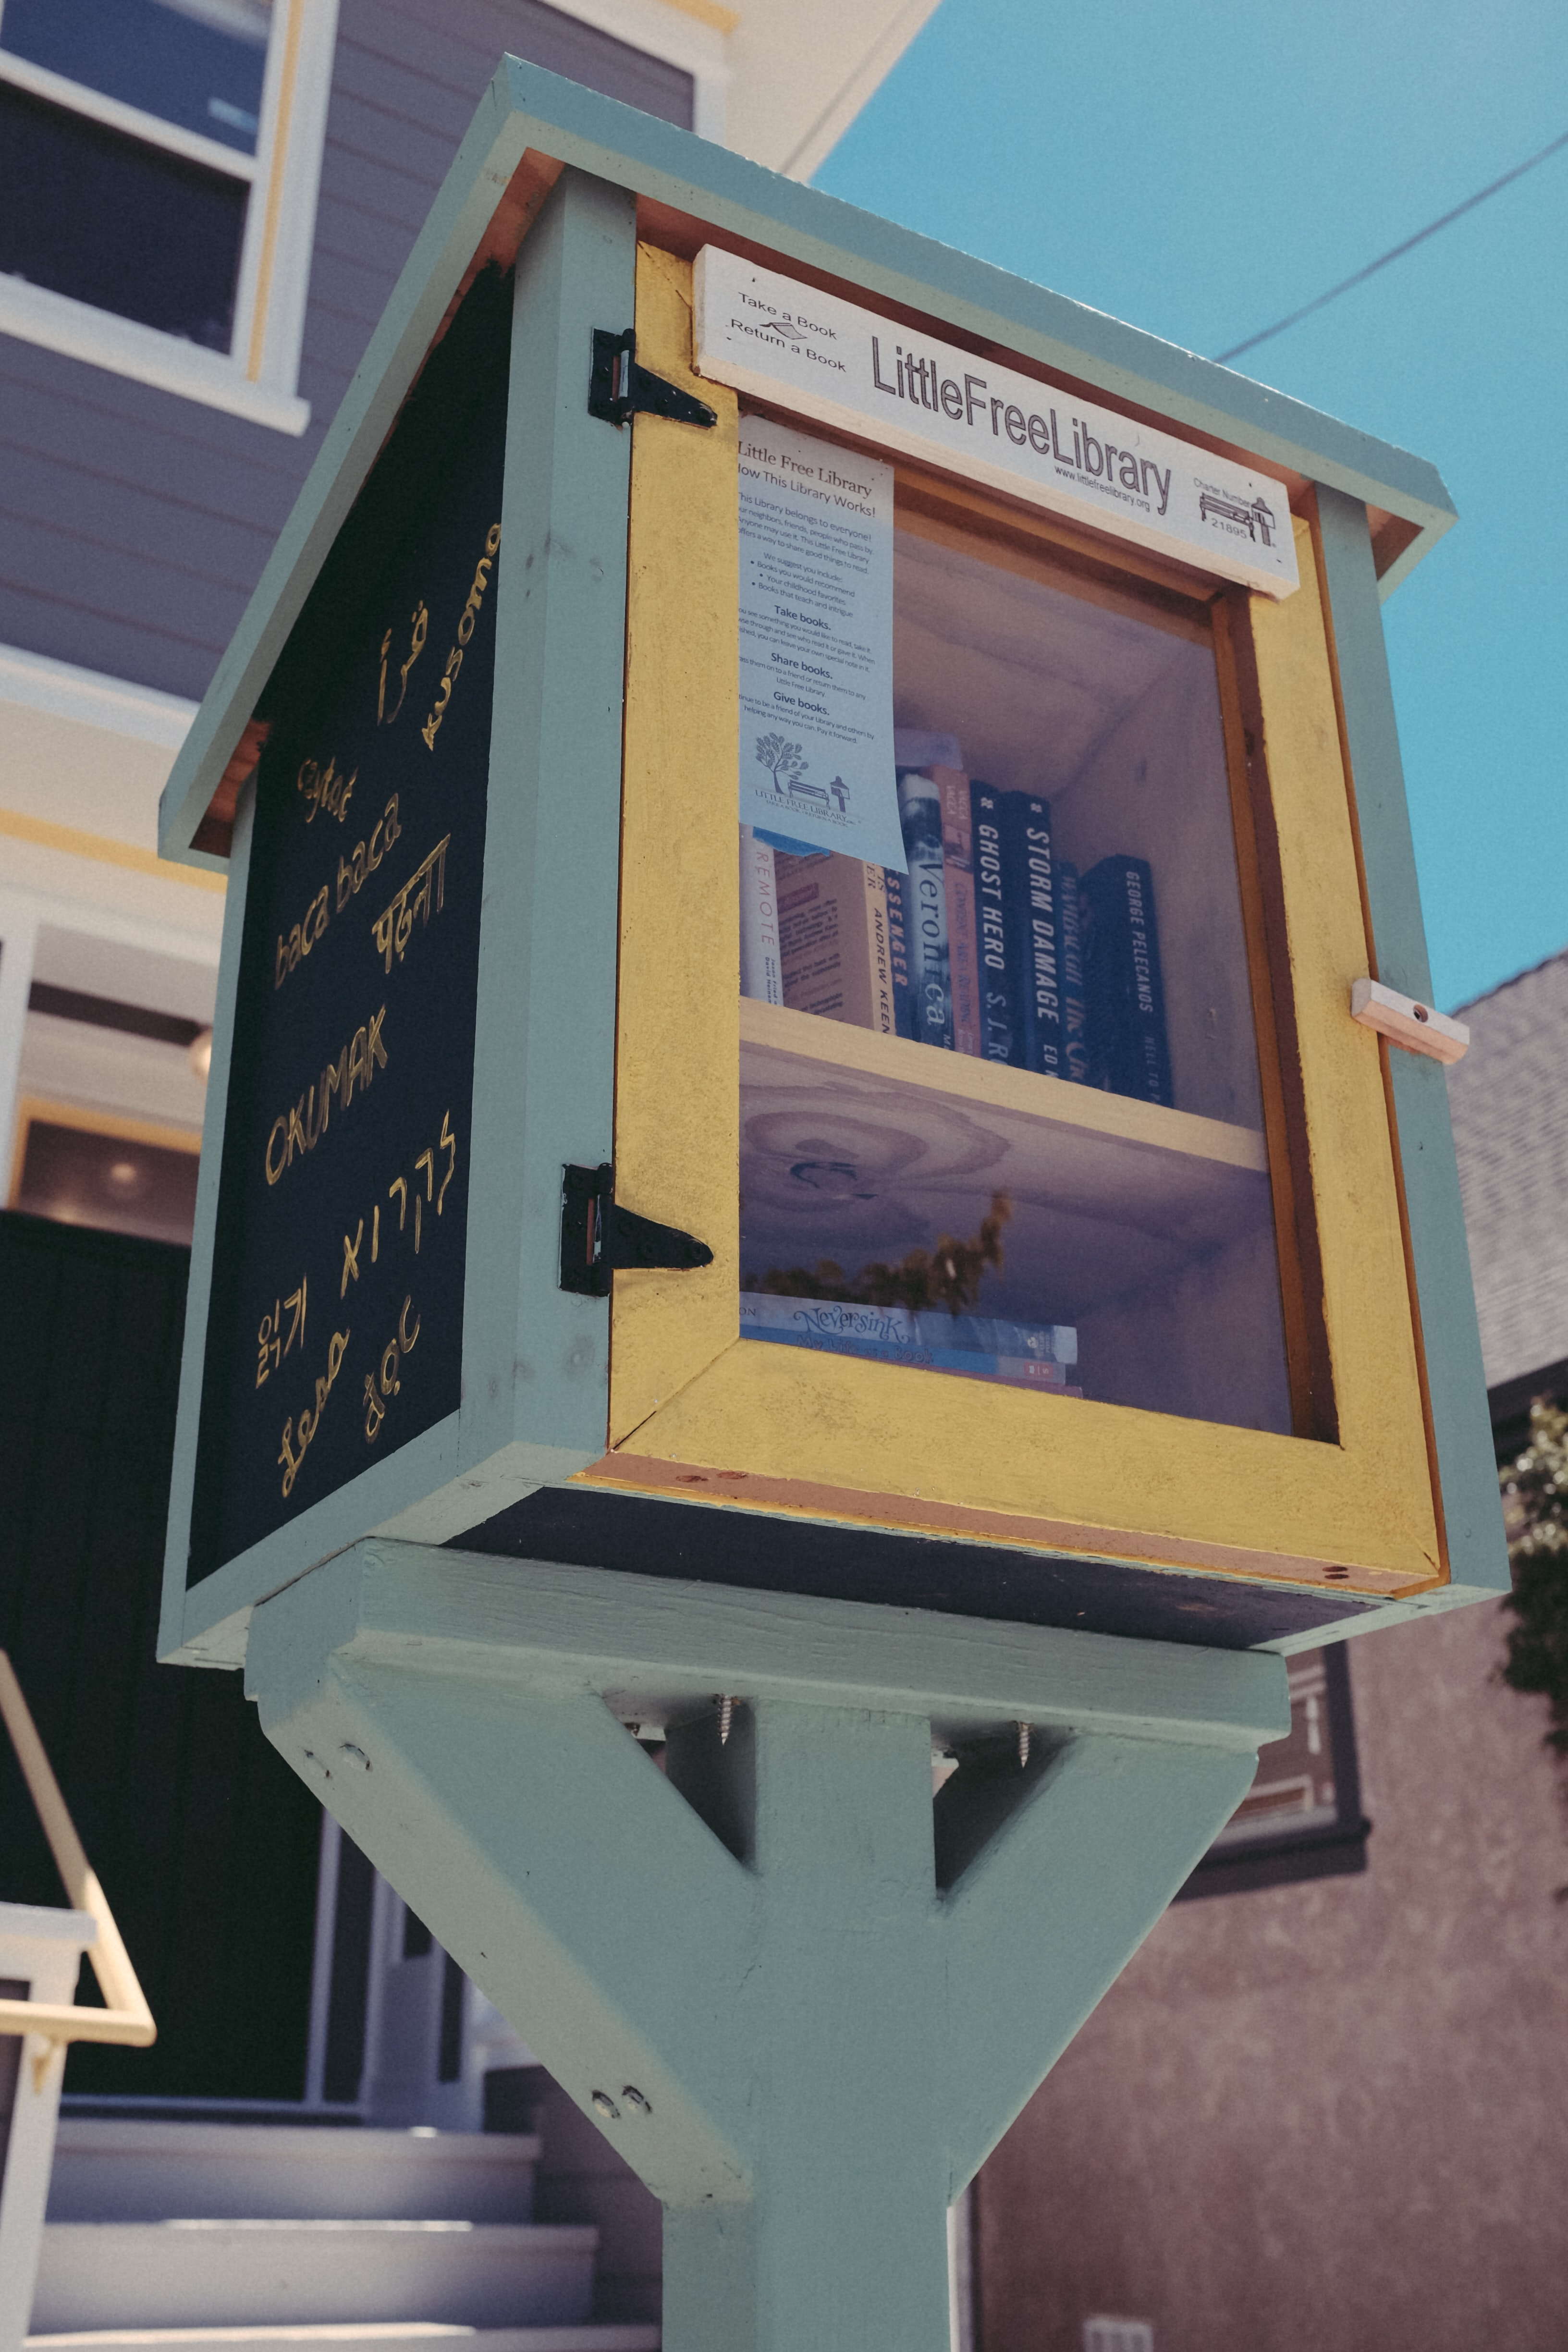 Little Free Library stand with clear door and library books inside and writing on exterior